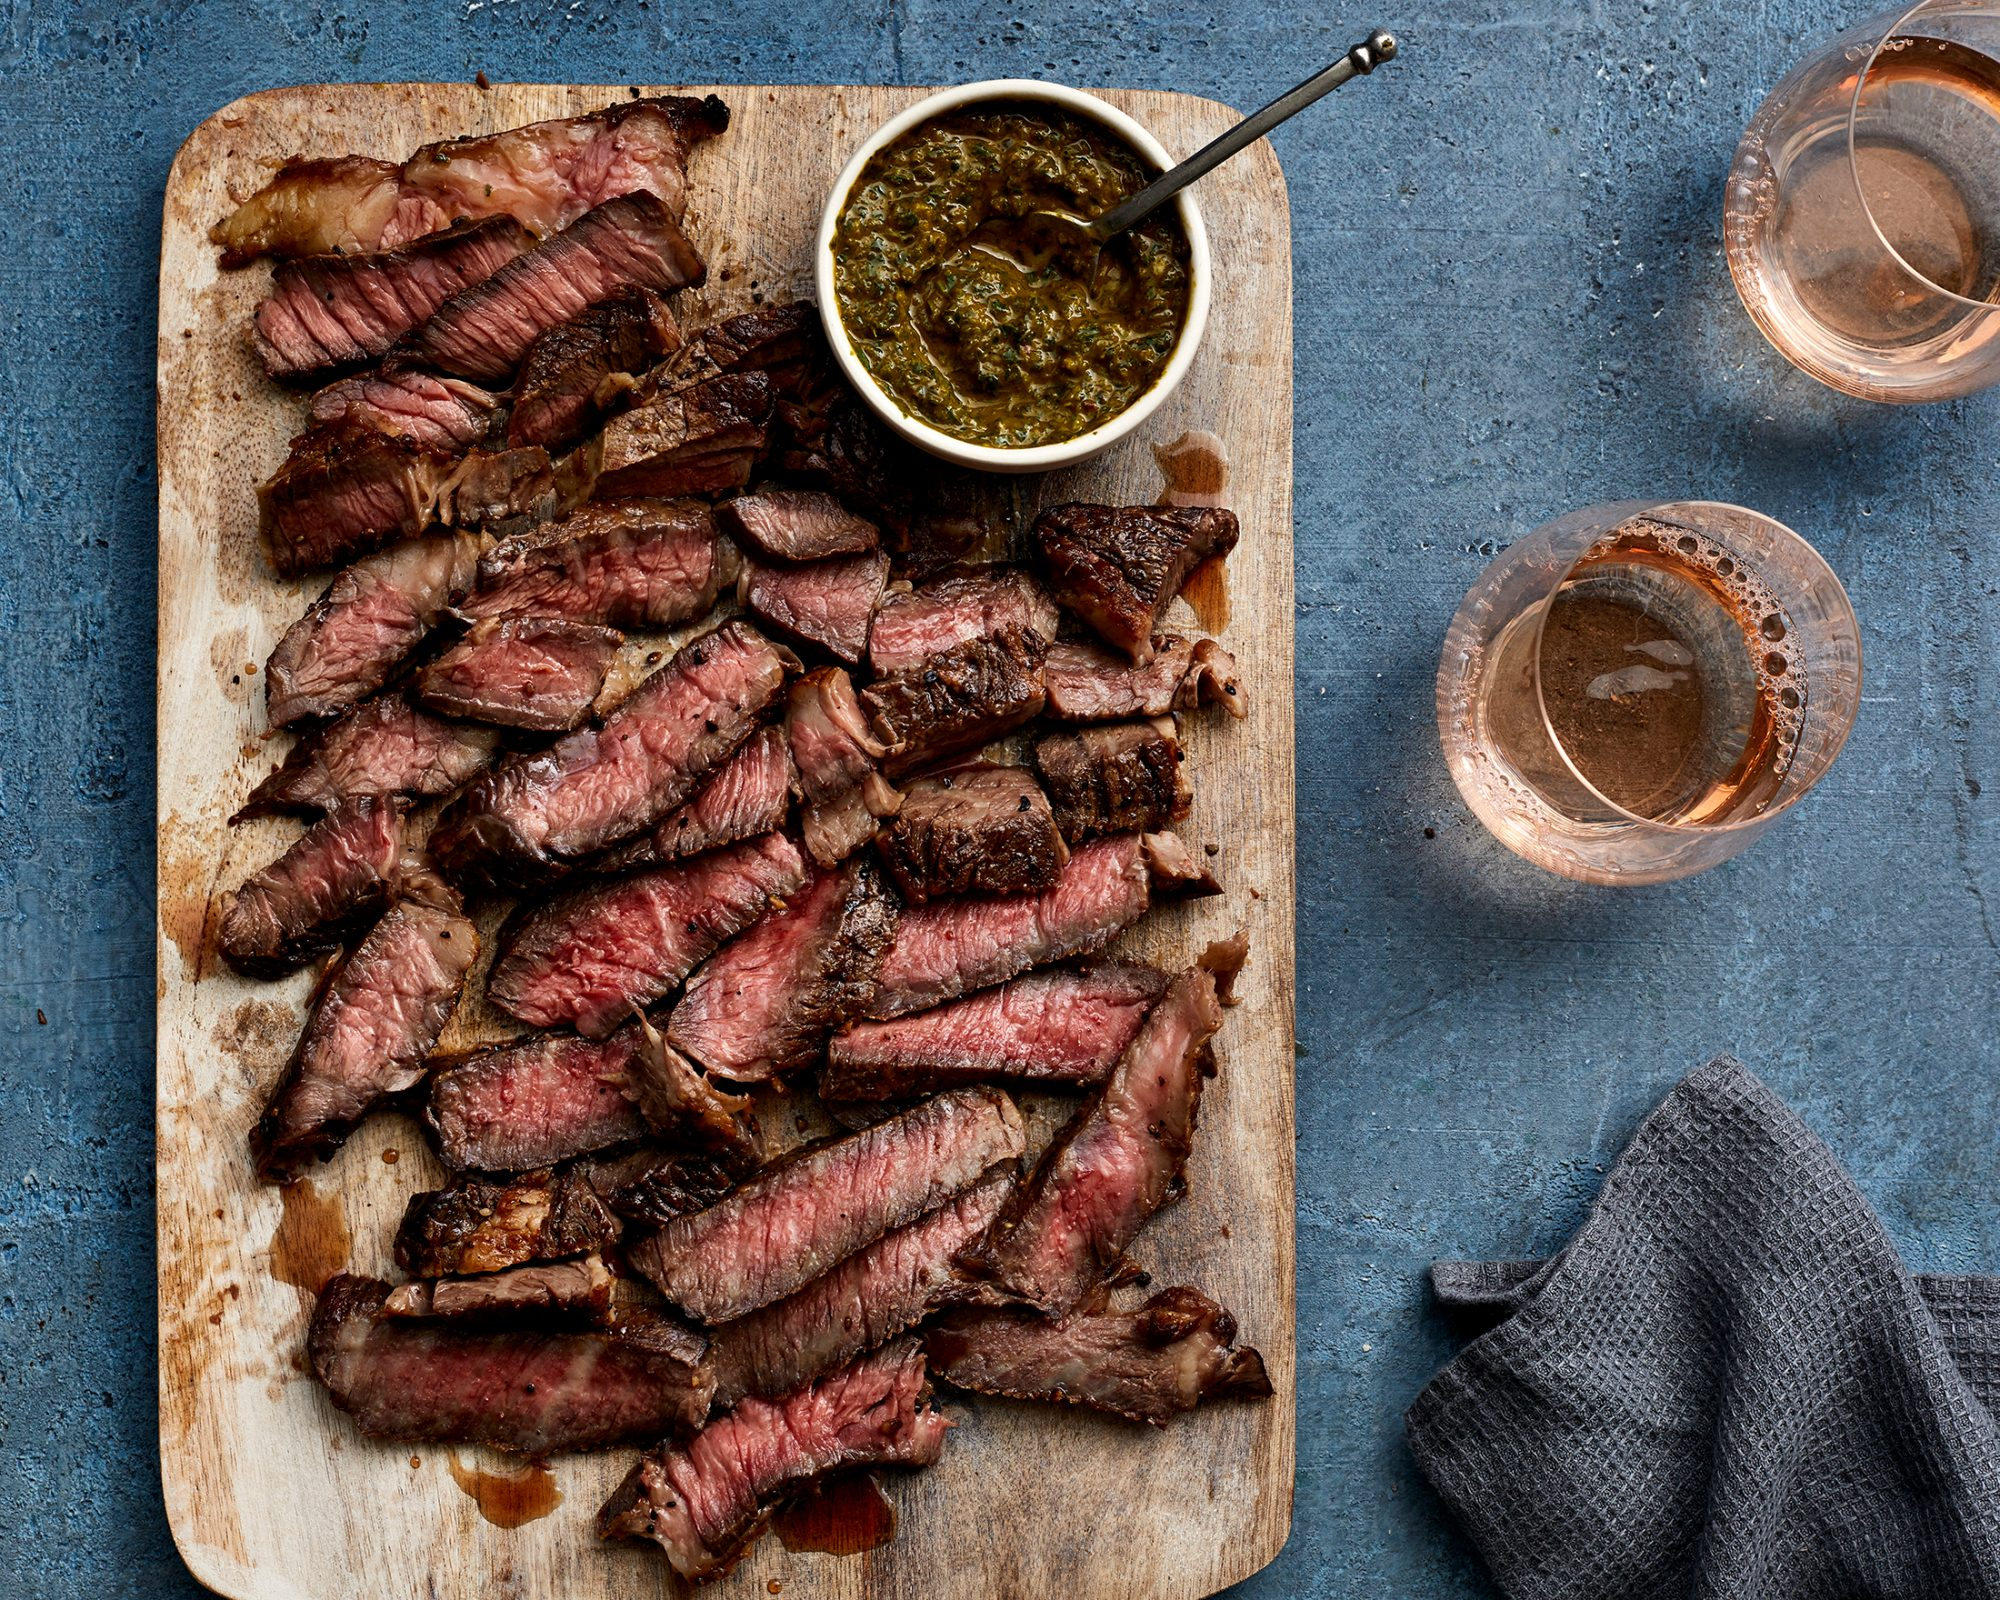 The One Trick That Will Make Any Steak Taste Expensive